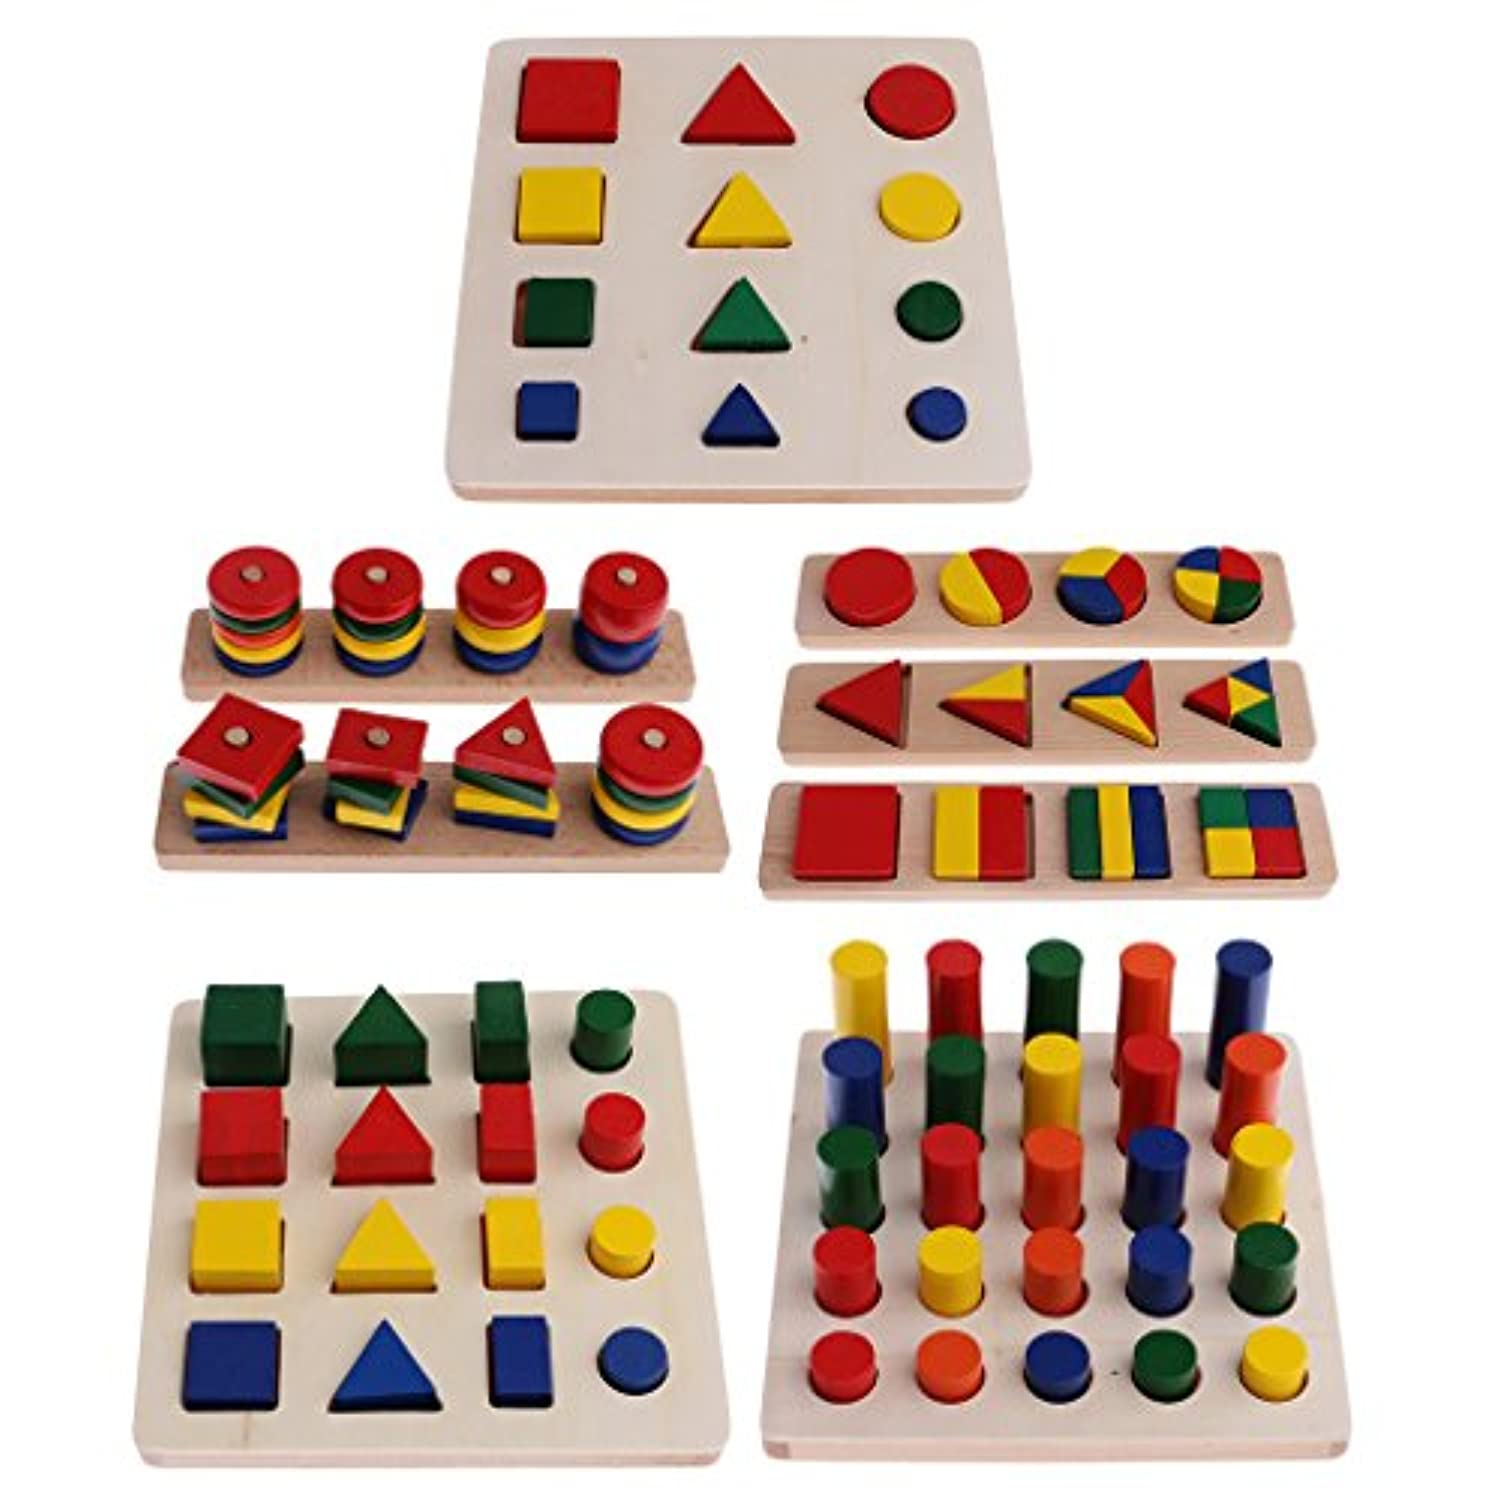 monkeyjack Montessori数学材質ジオメトリブロックMatching Counting for Kids Early Leaningおもちゃ誕生日ギフト